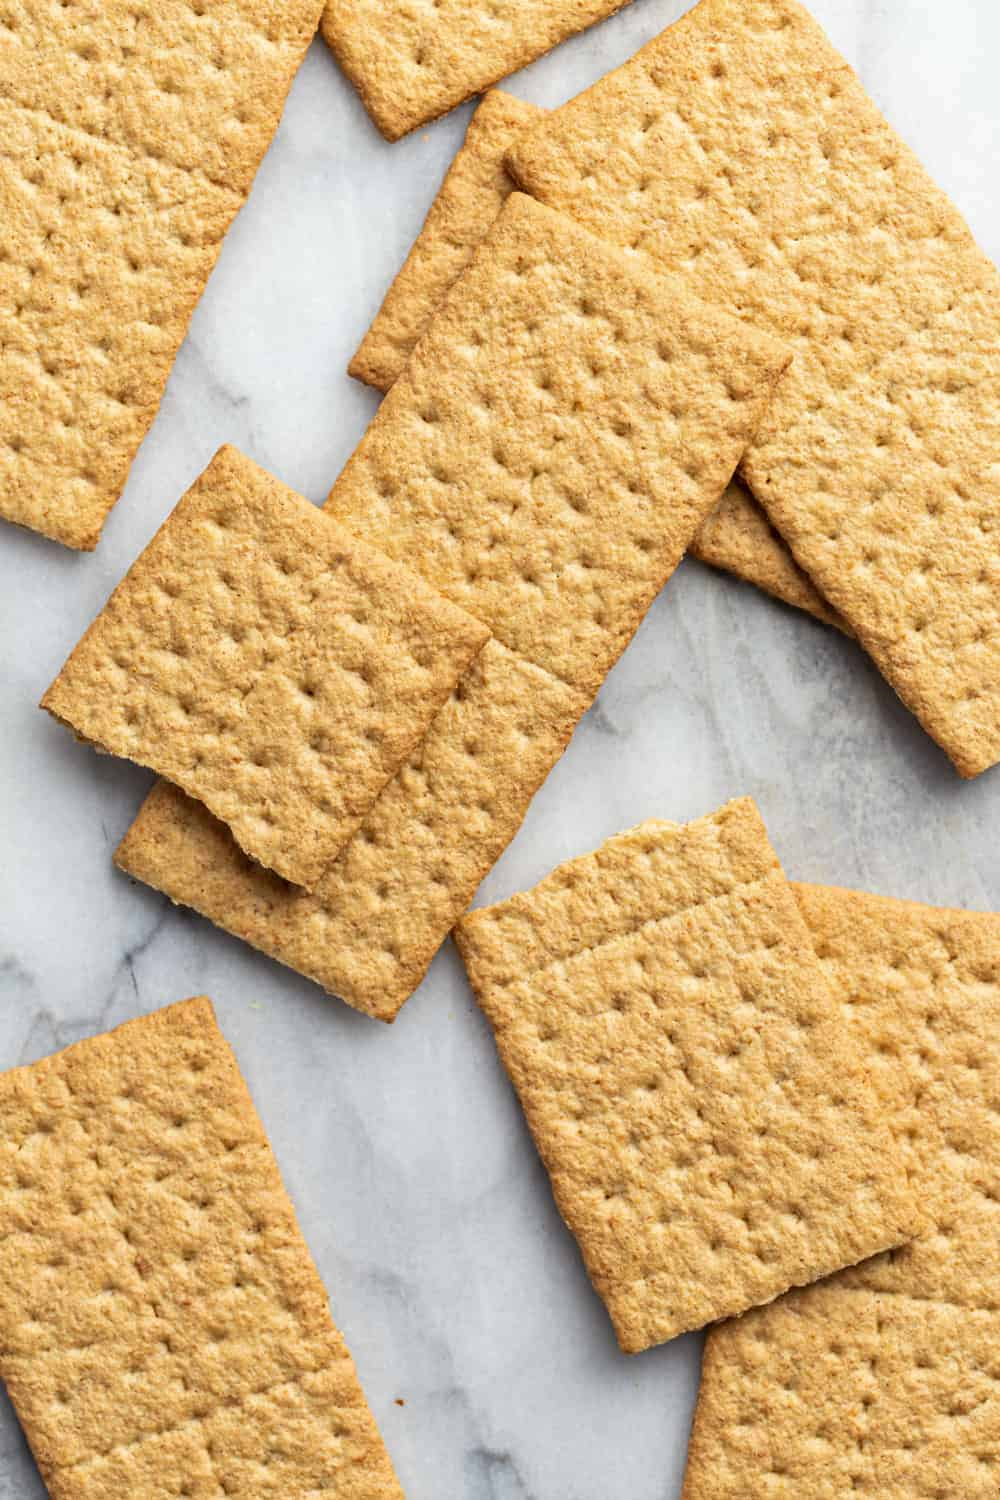 Whole graham crackers on a marble surface